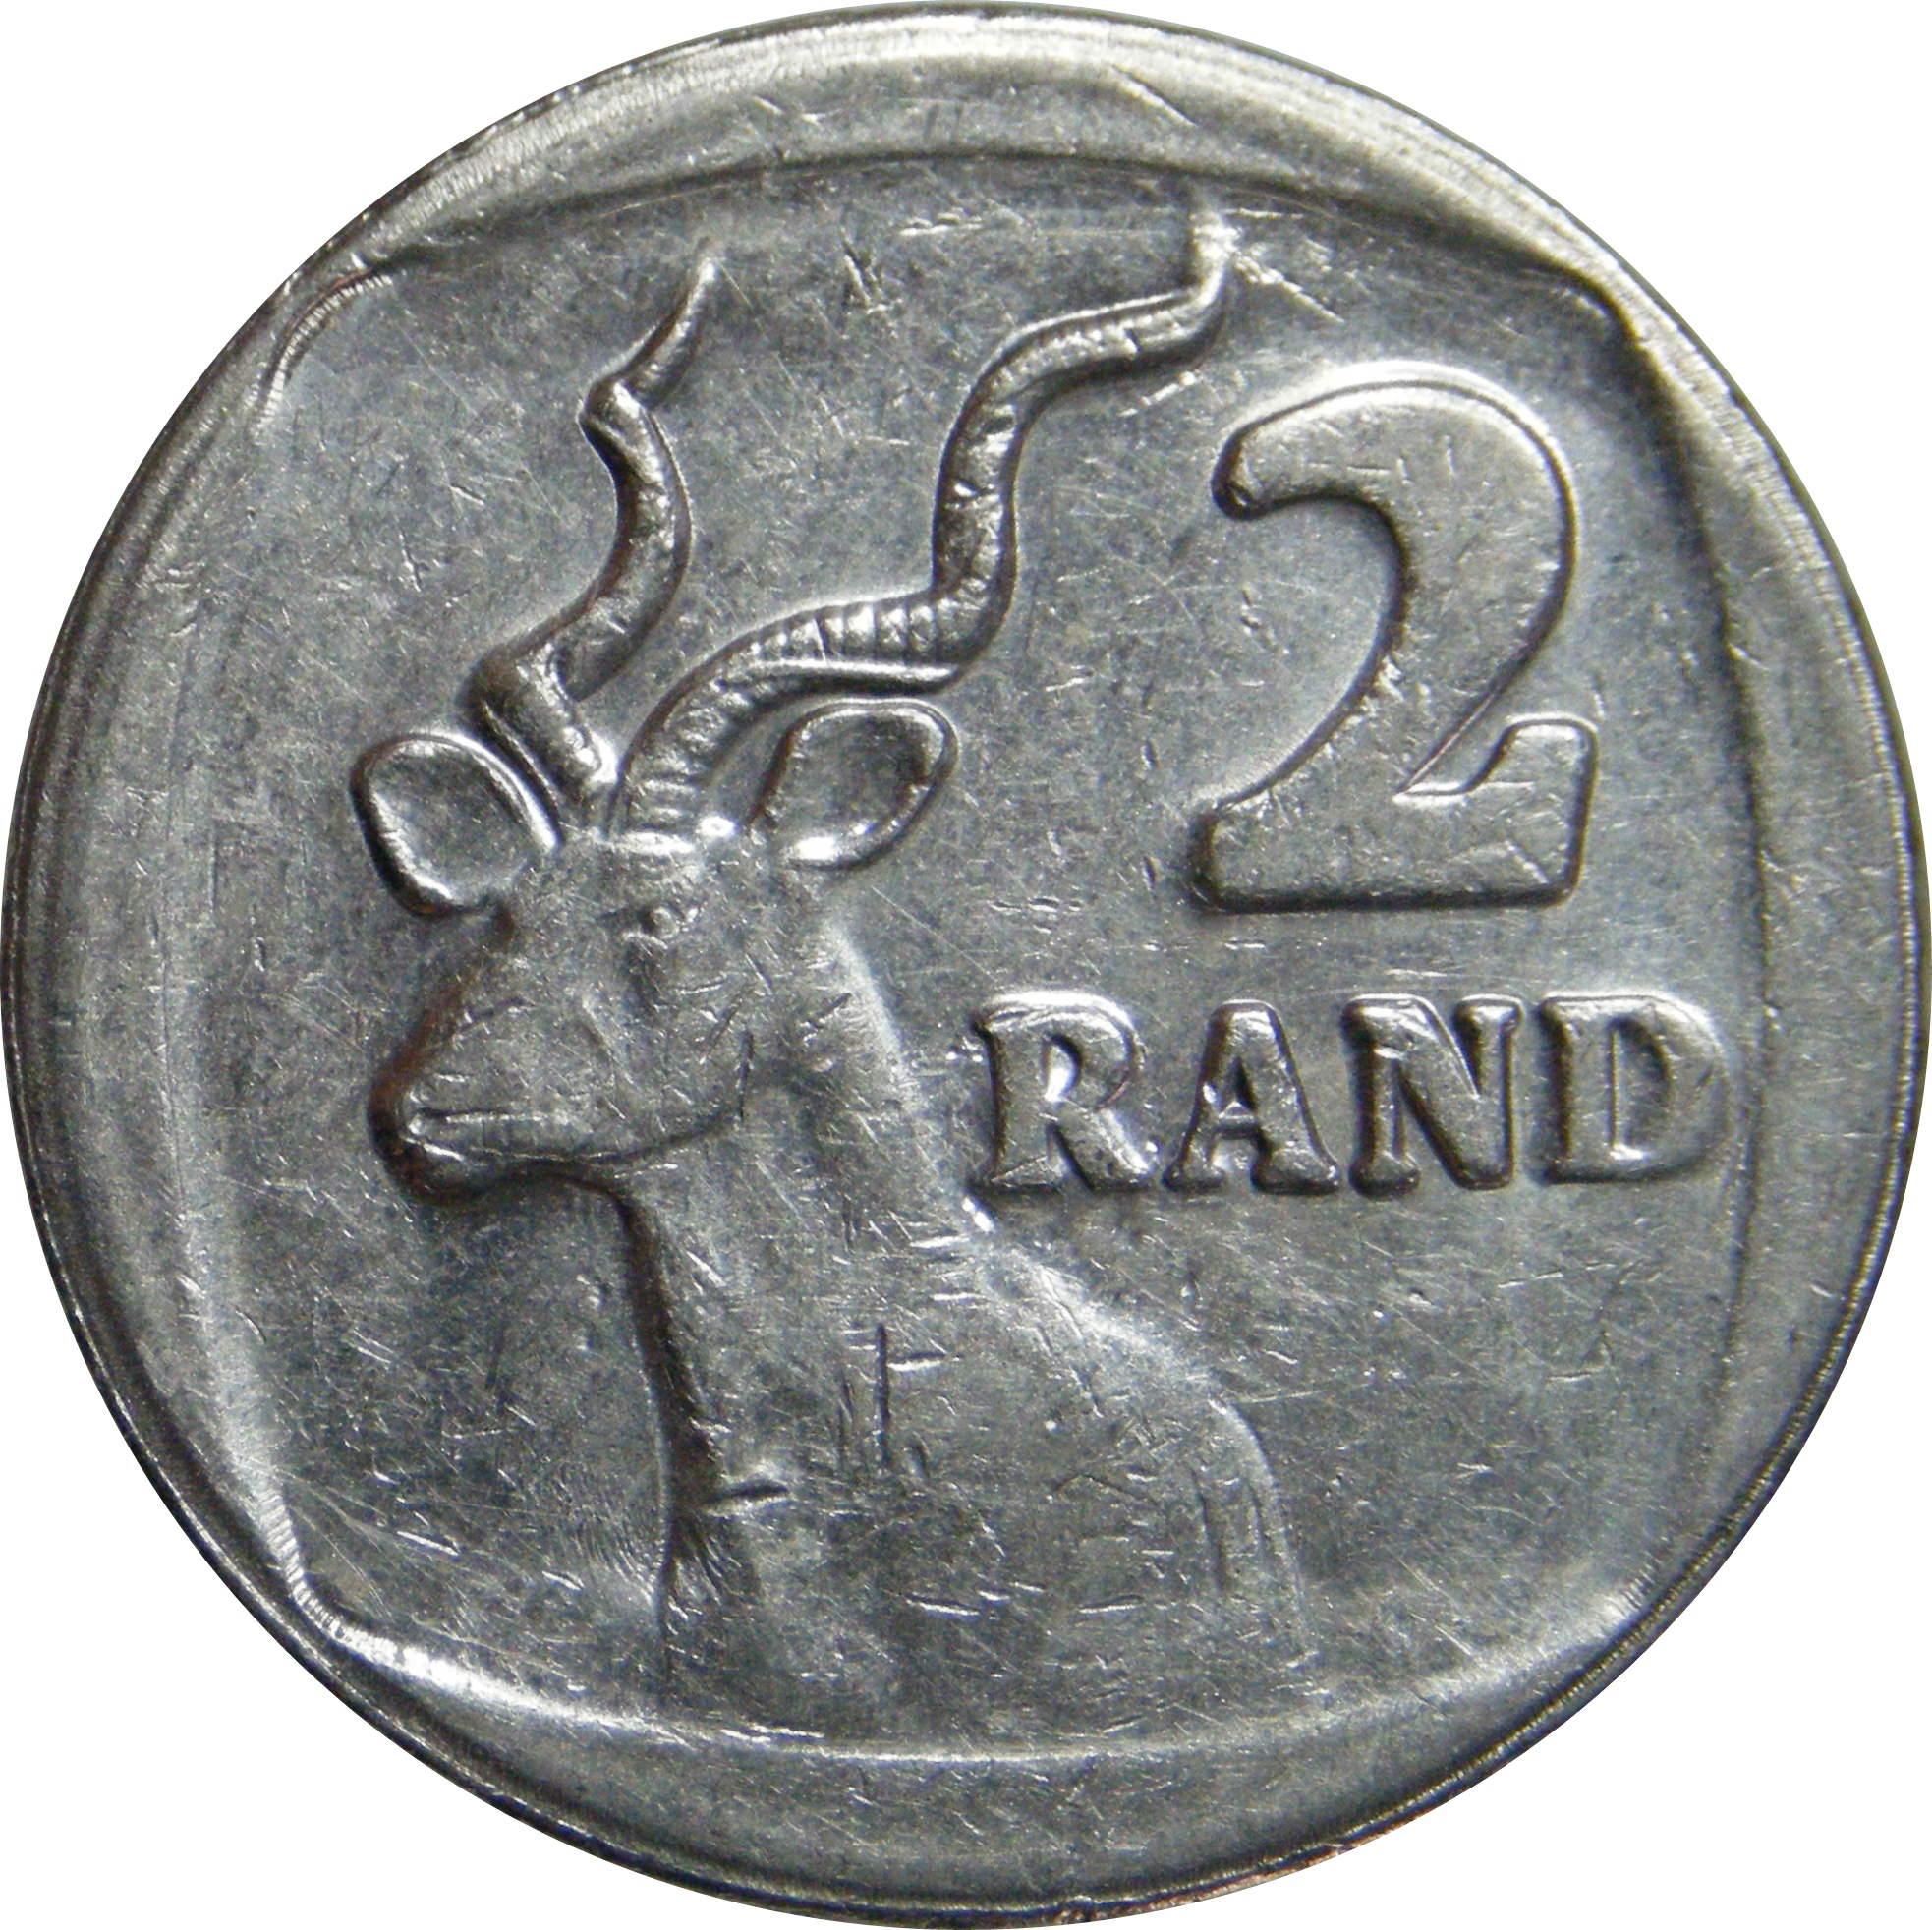 South African Rand Coins